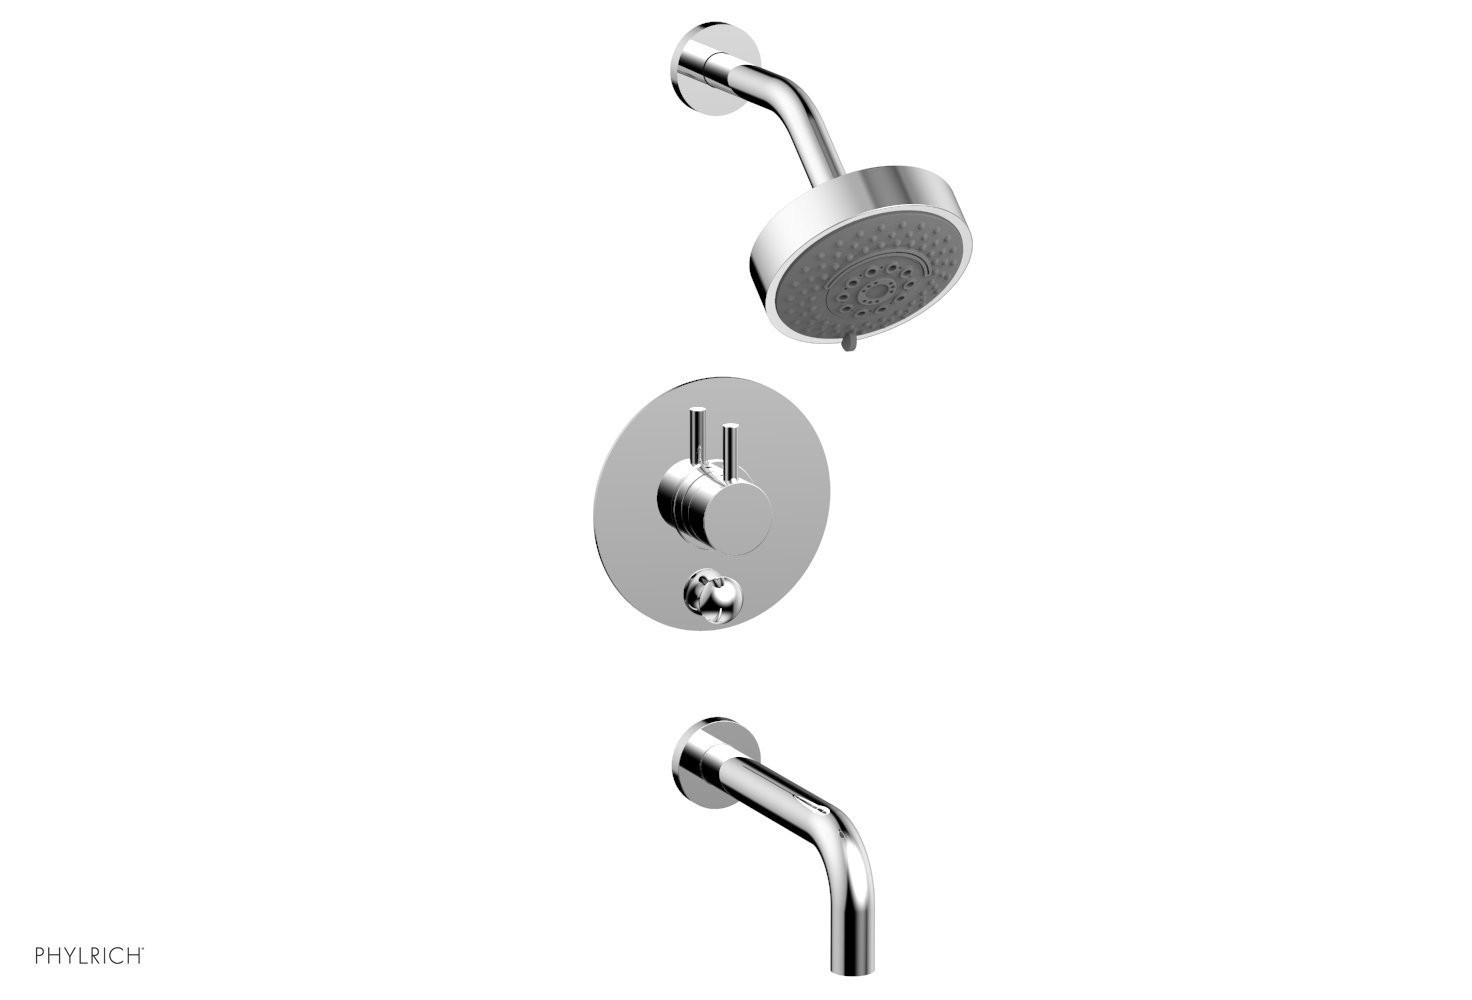 PHYLRICH 230-29 BASIC II WALL MOUNT PRESSURE BALANCE TUB AND SHOWER SET WITH LEVER HANDLE